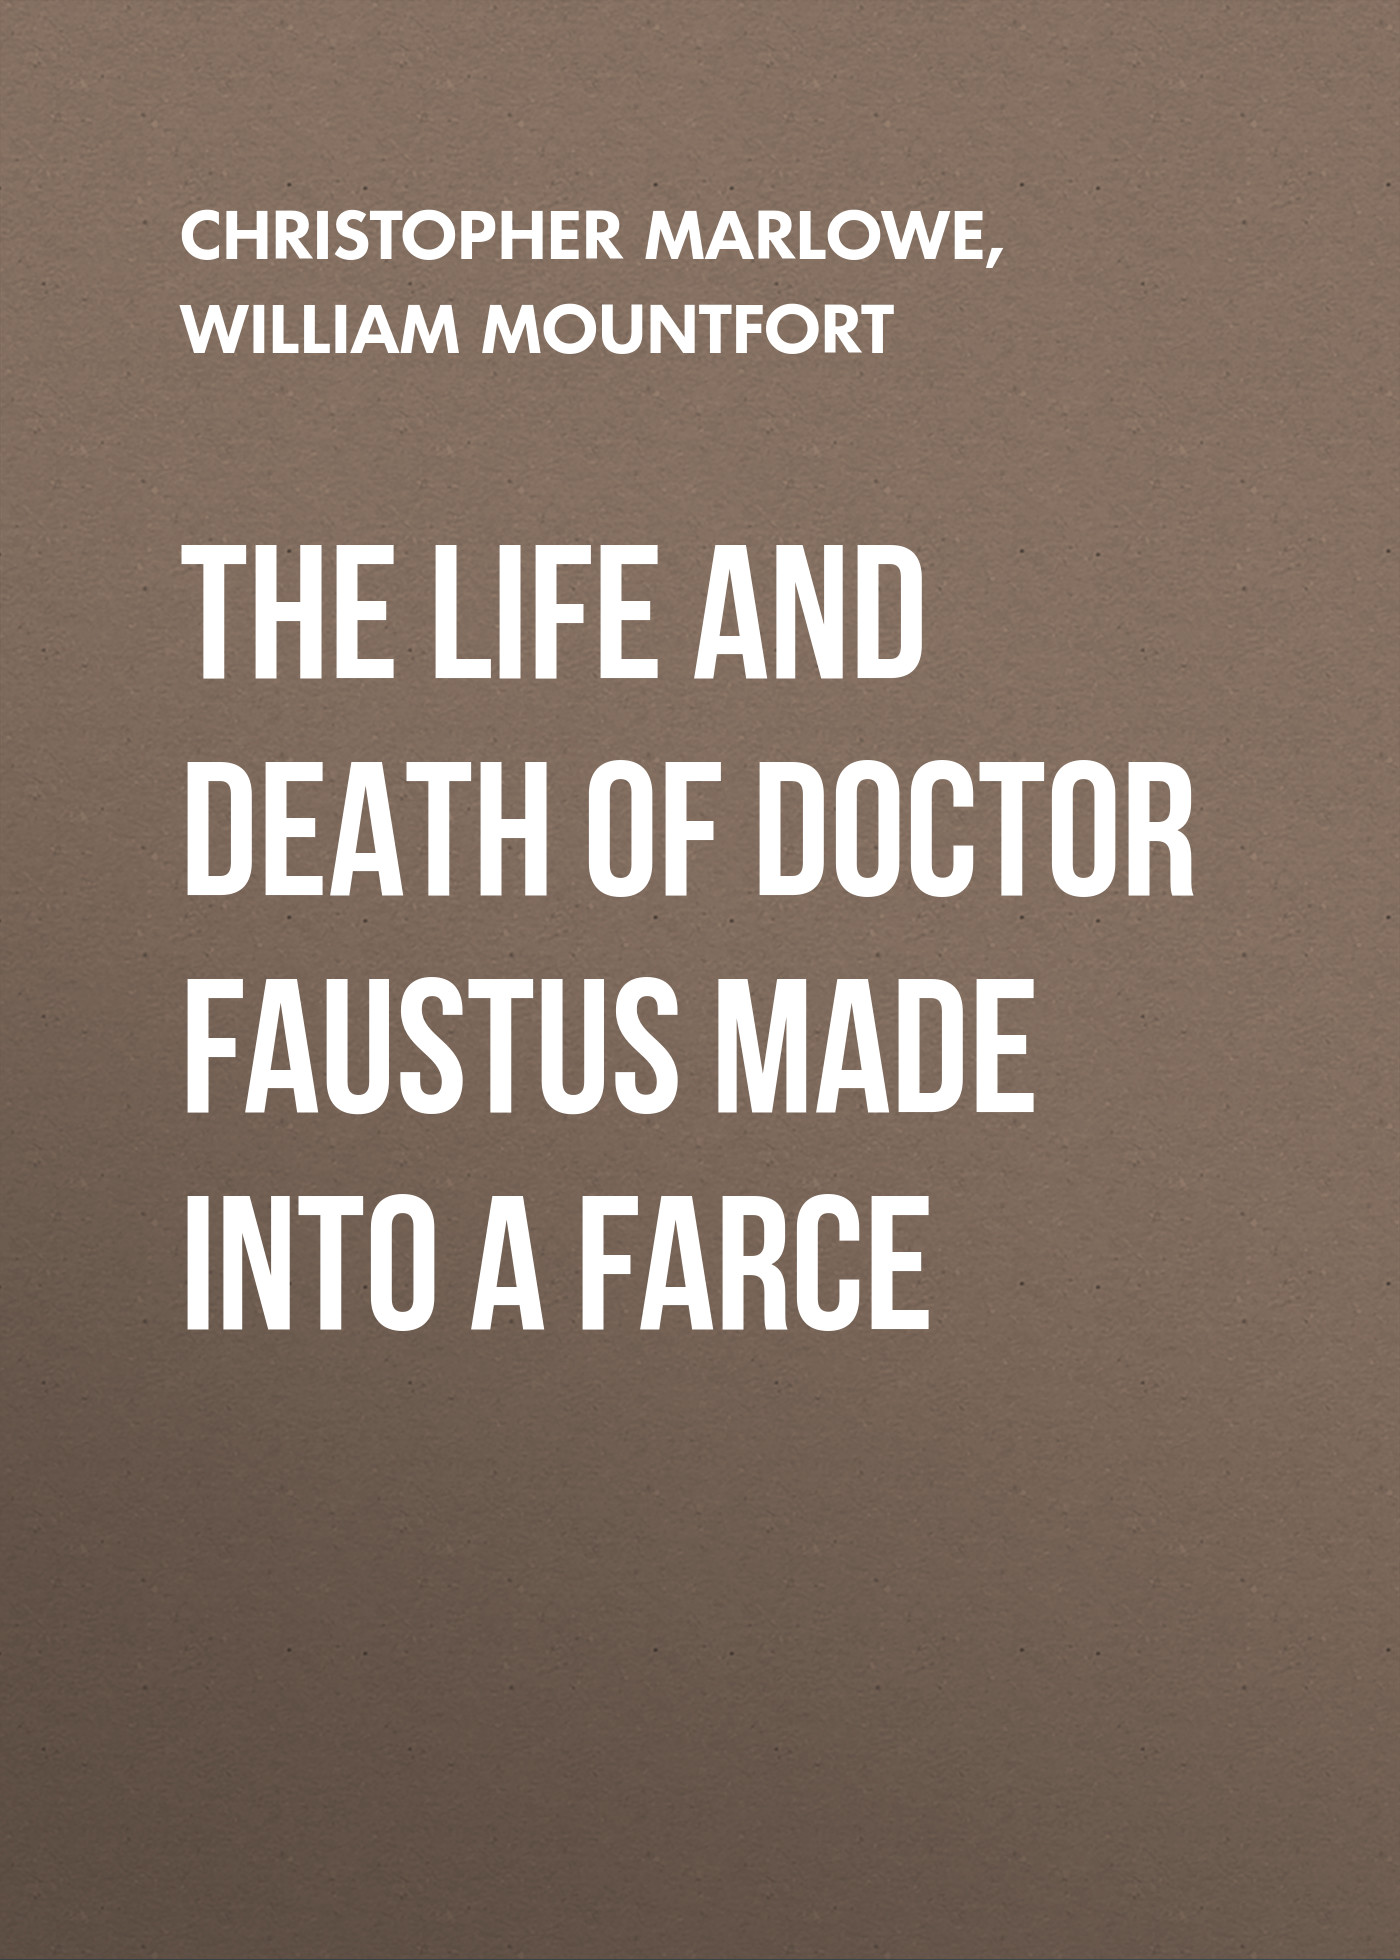 Christopher Marlowe The Life and Death of Doctor Faustus Made into a Farce rhyming life and death